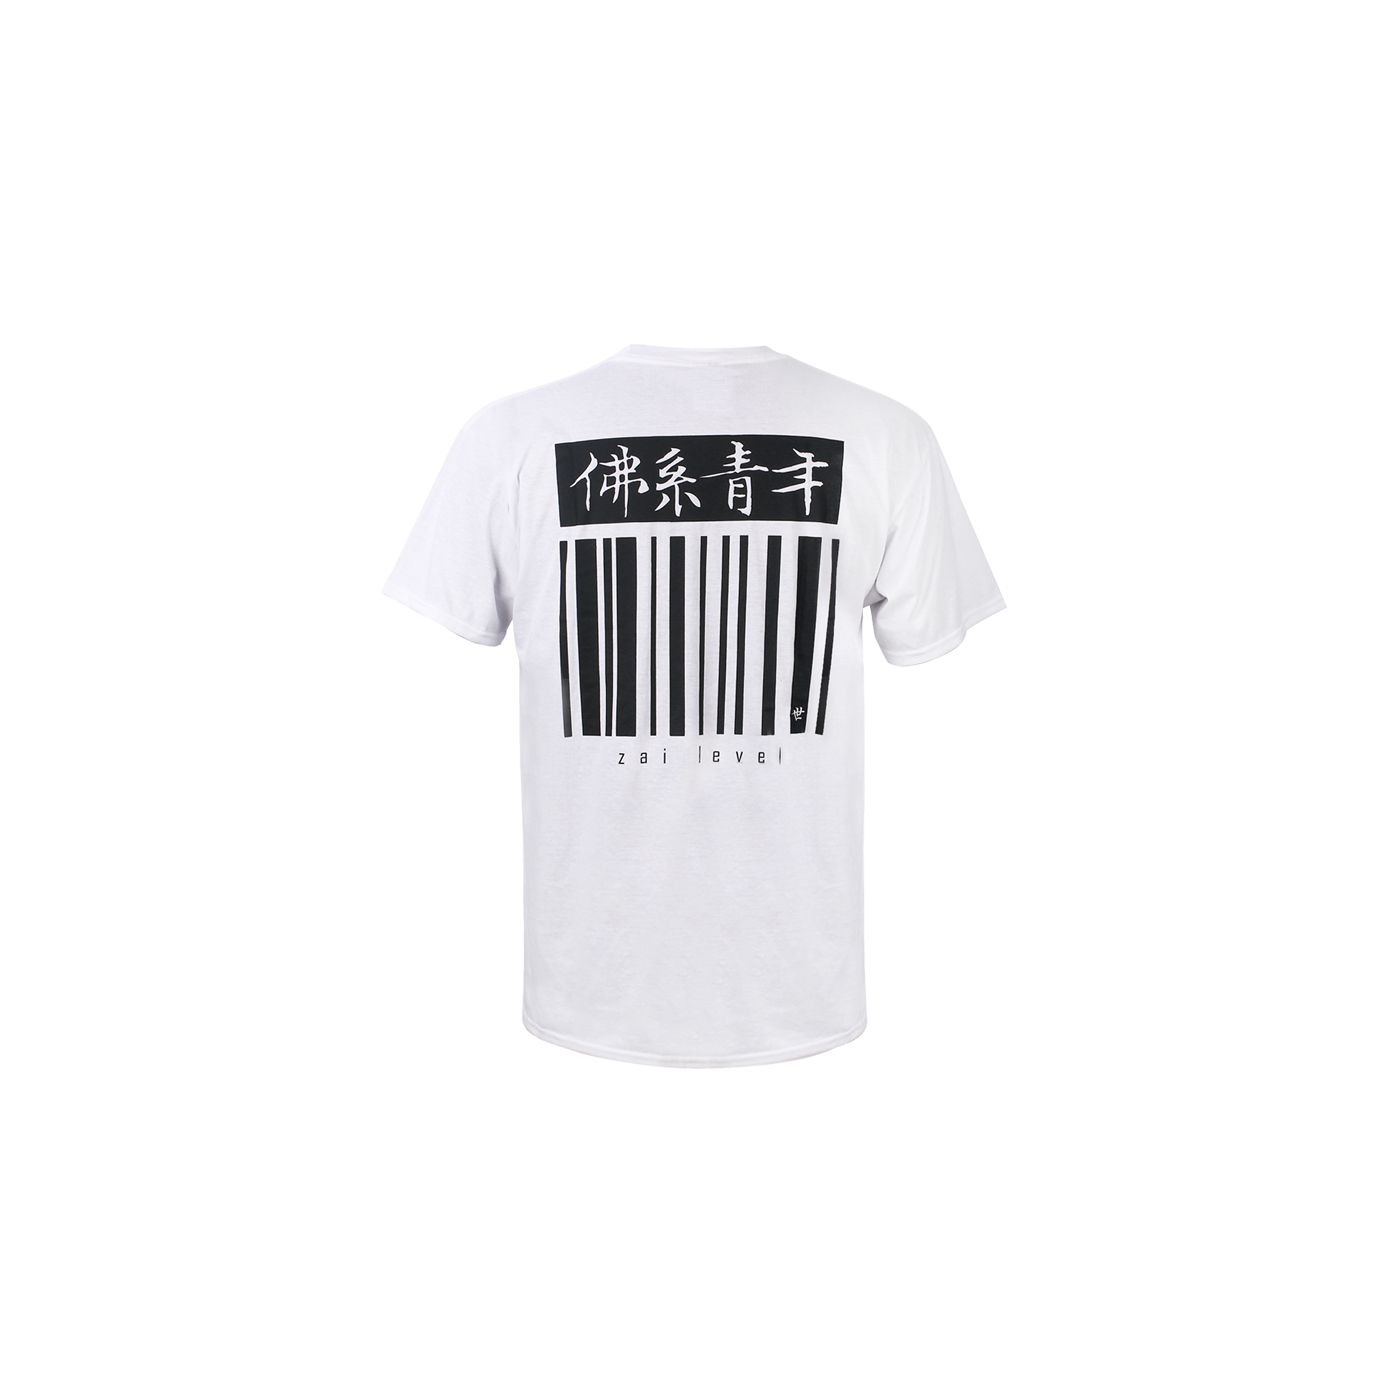 Chinese T-shirt ScanMe Back.jpg